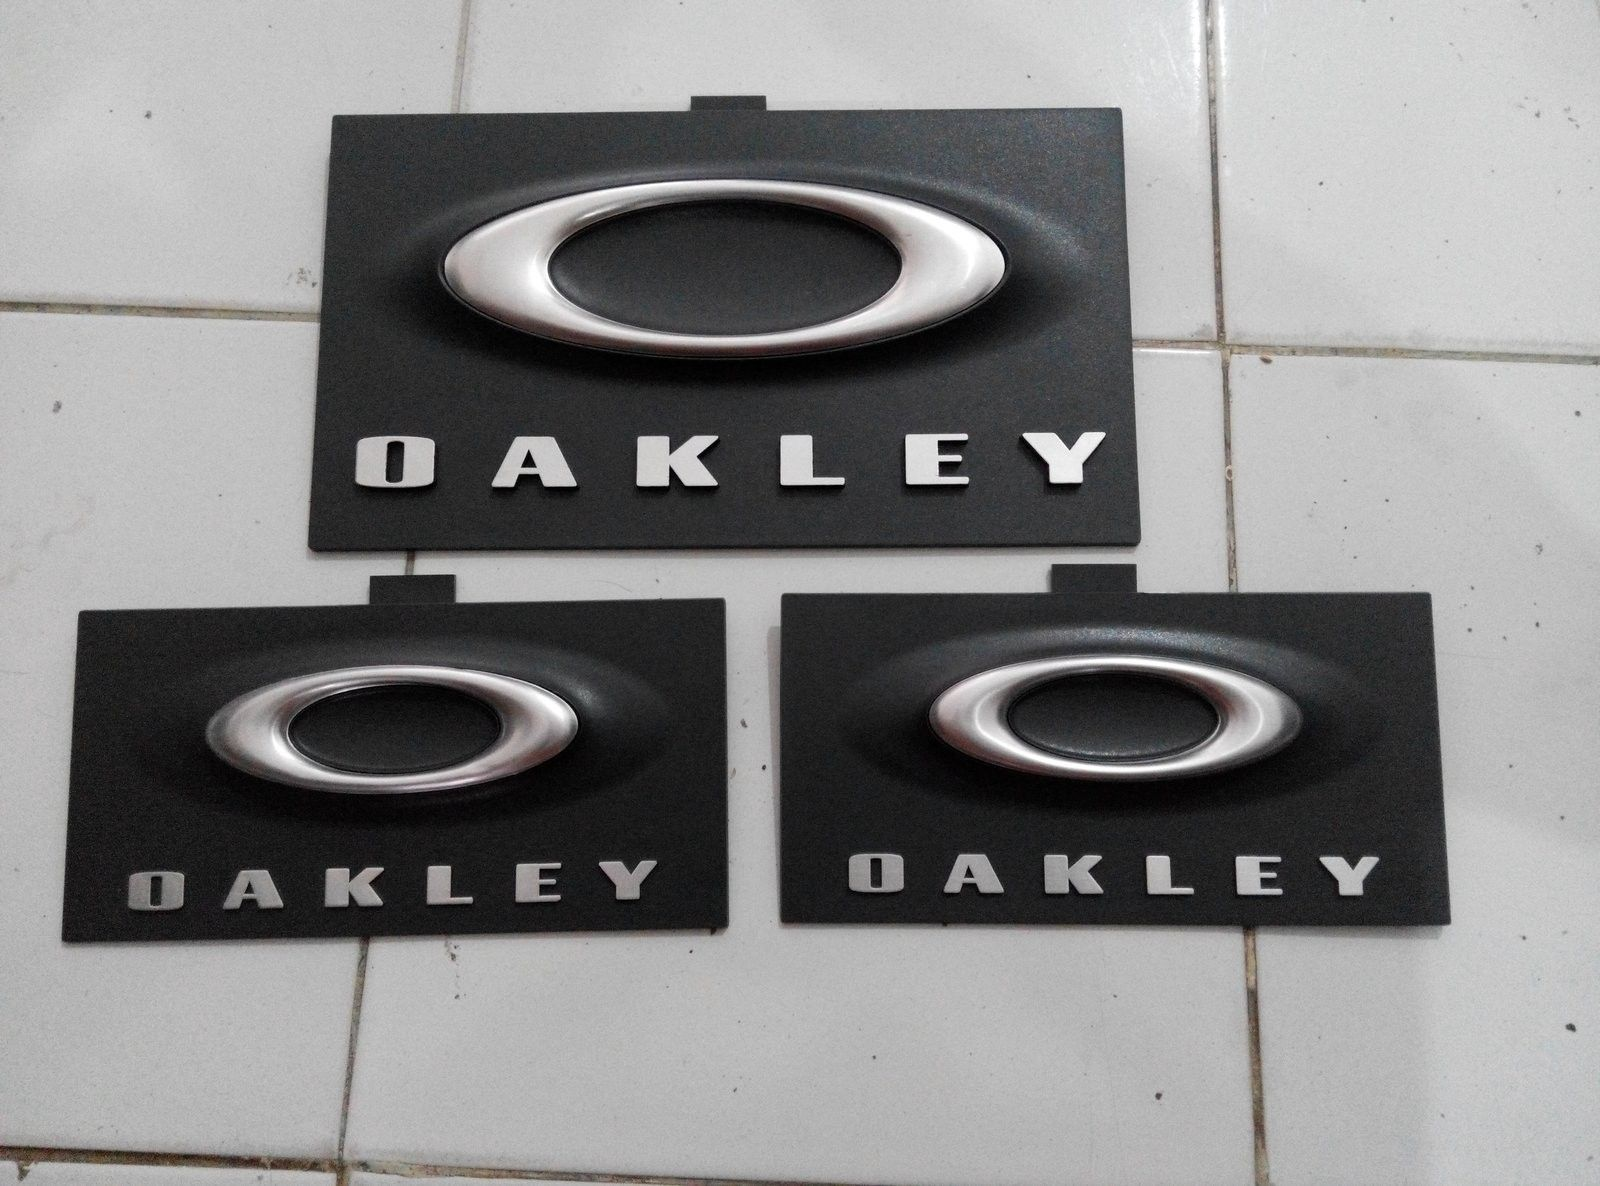 Oakley display sign - IMG_20150608_163009.jpg